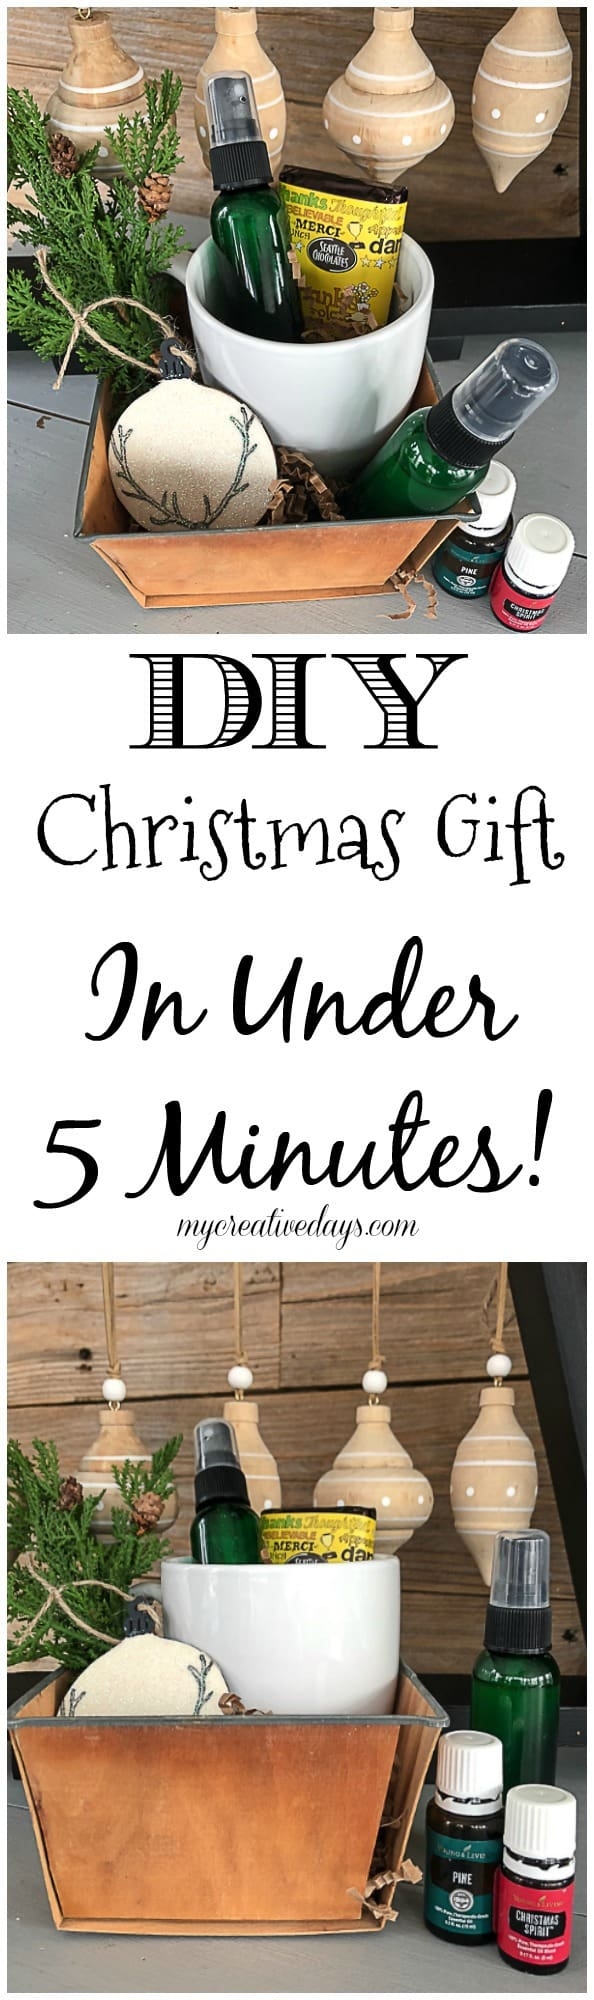 DIY Christmas Gift In Under 5 Minutes! - My Creative Days